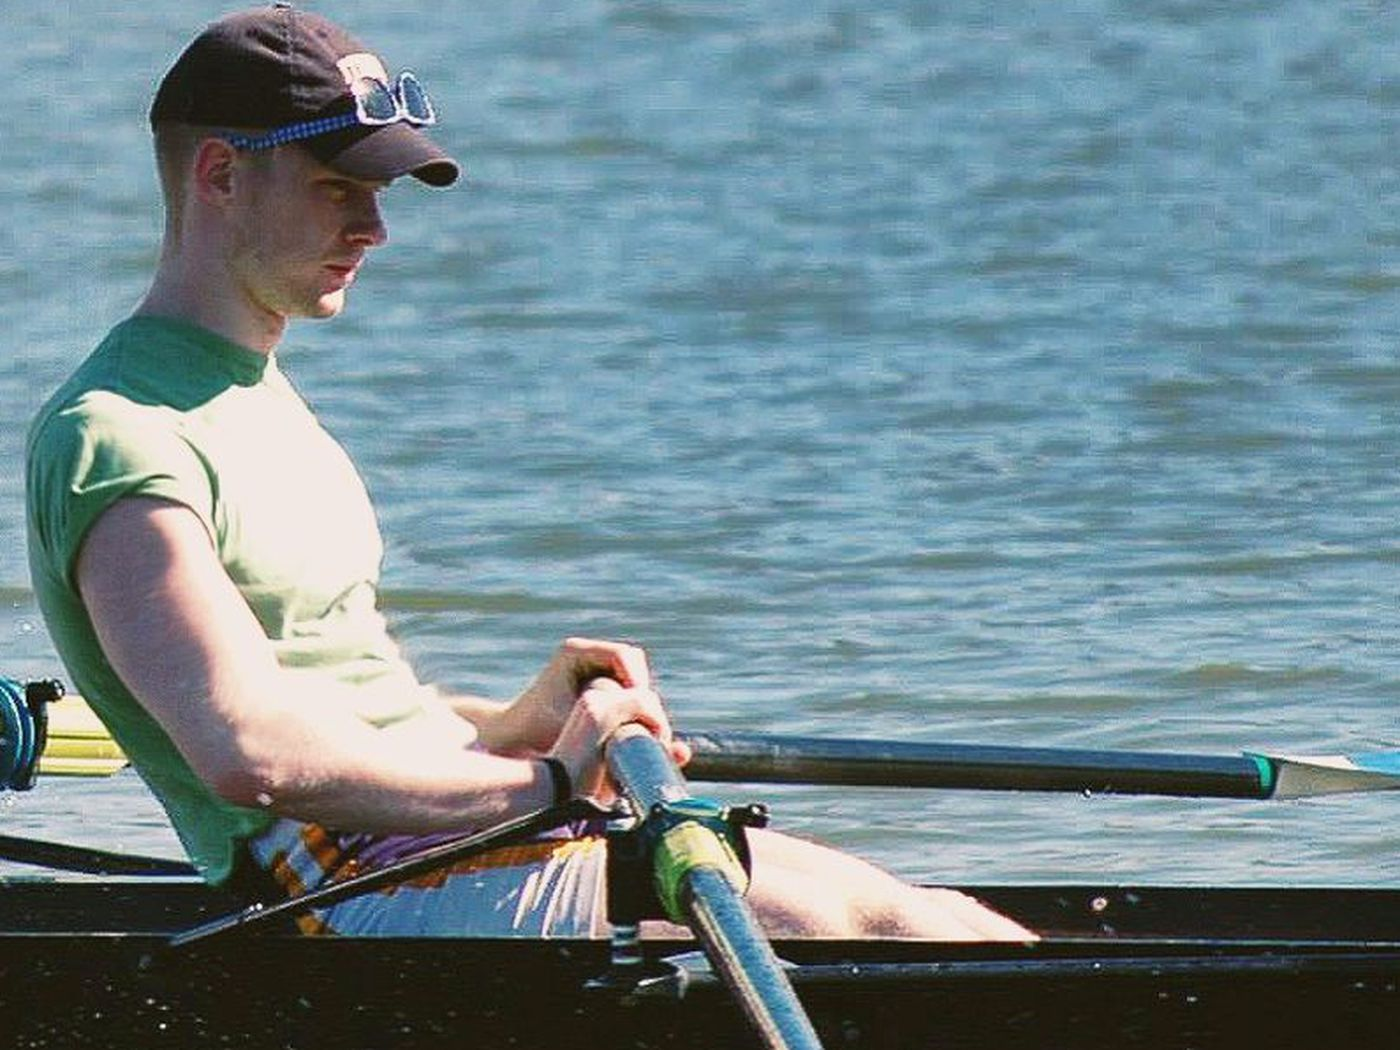 After being outed, college rower forges his own path - Outsports